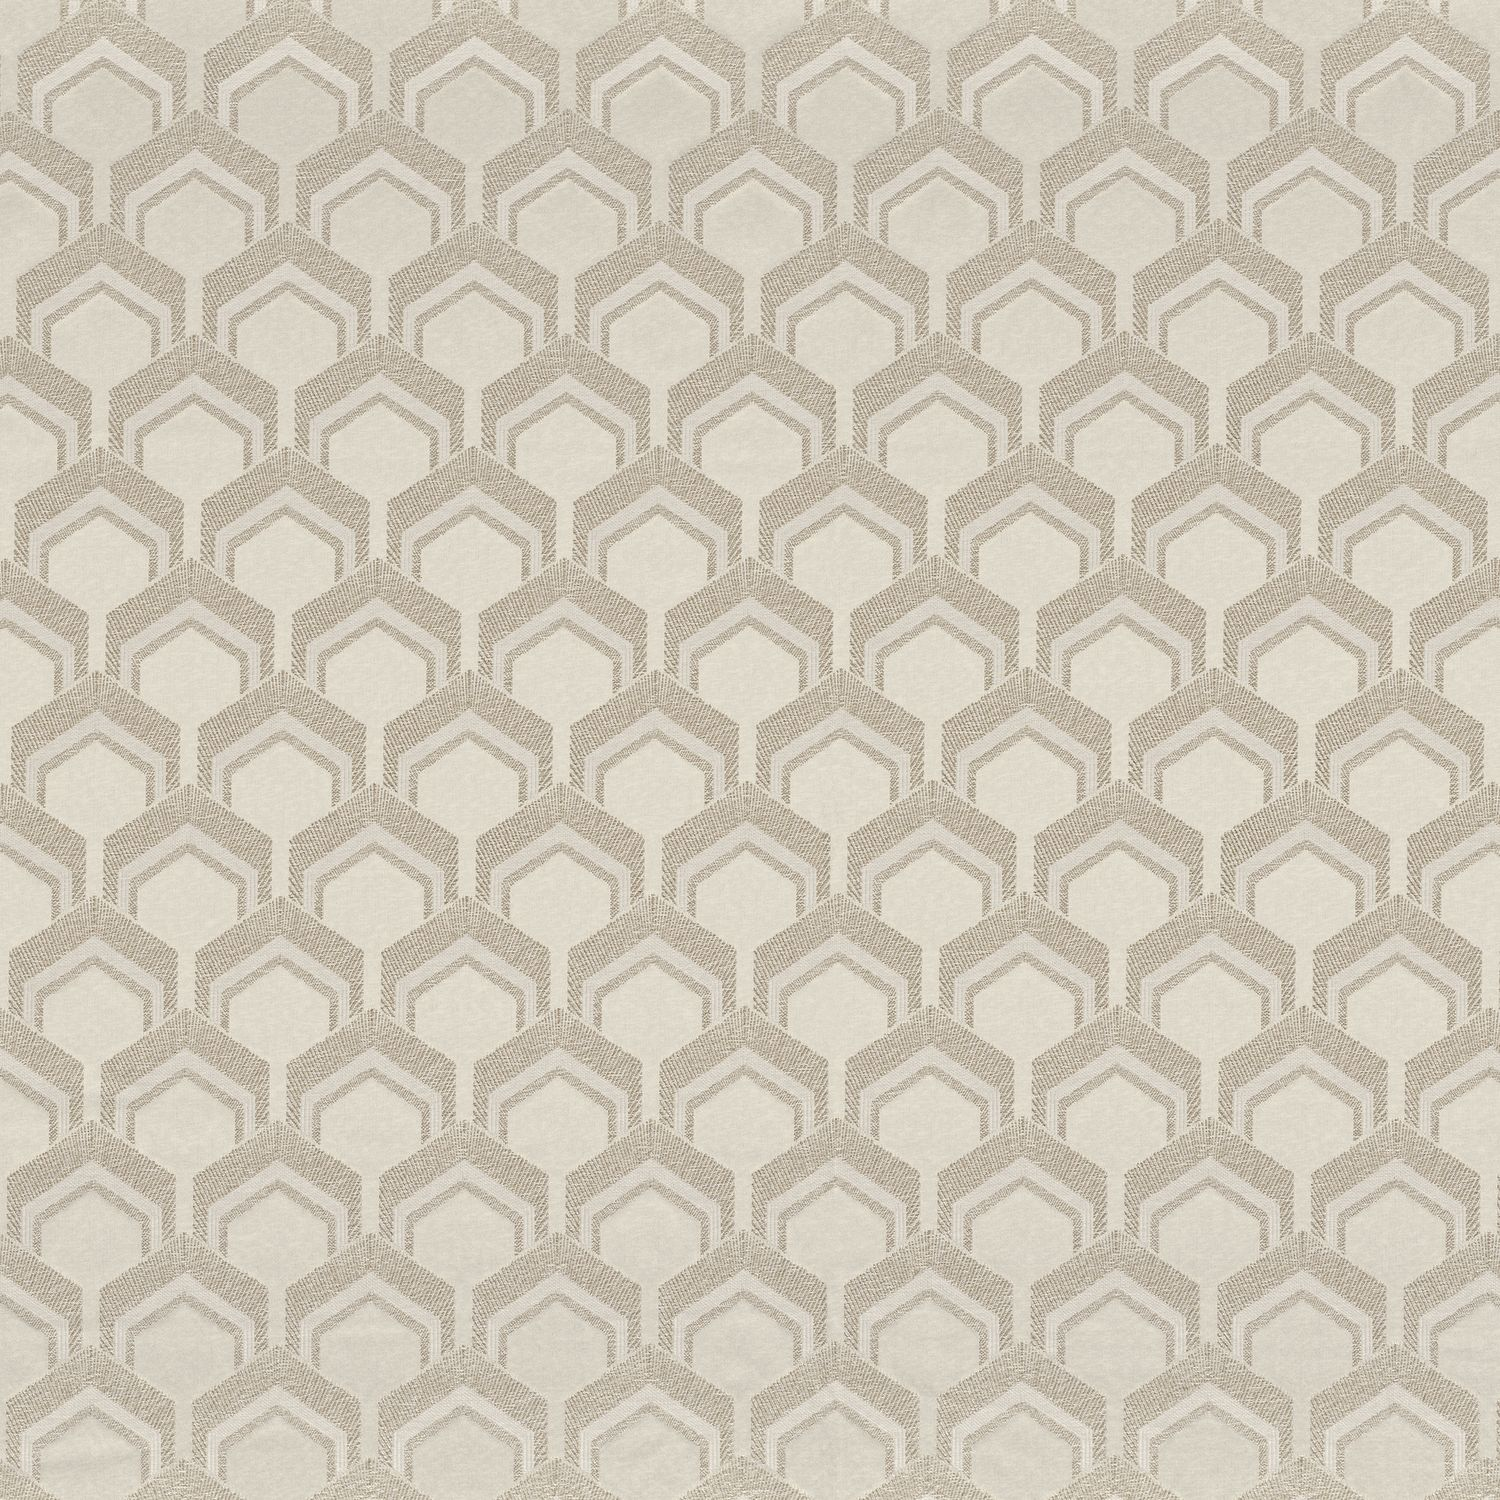 44900104 Collection - Hudson Fabric